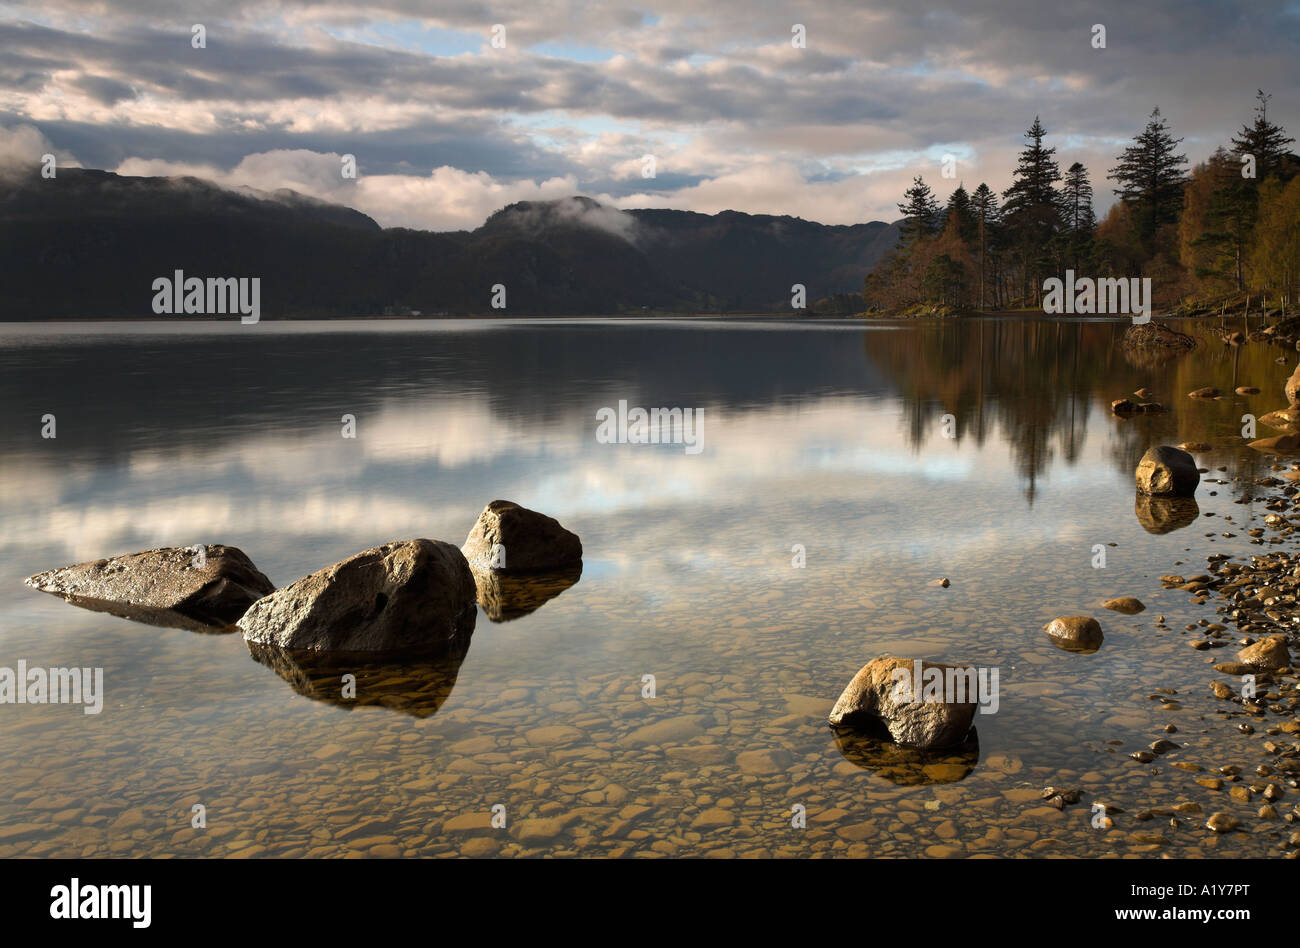 A brief glimpse of morning sunlight at Derwent Water, Lake District, England - Stock Image